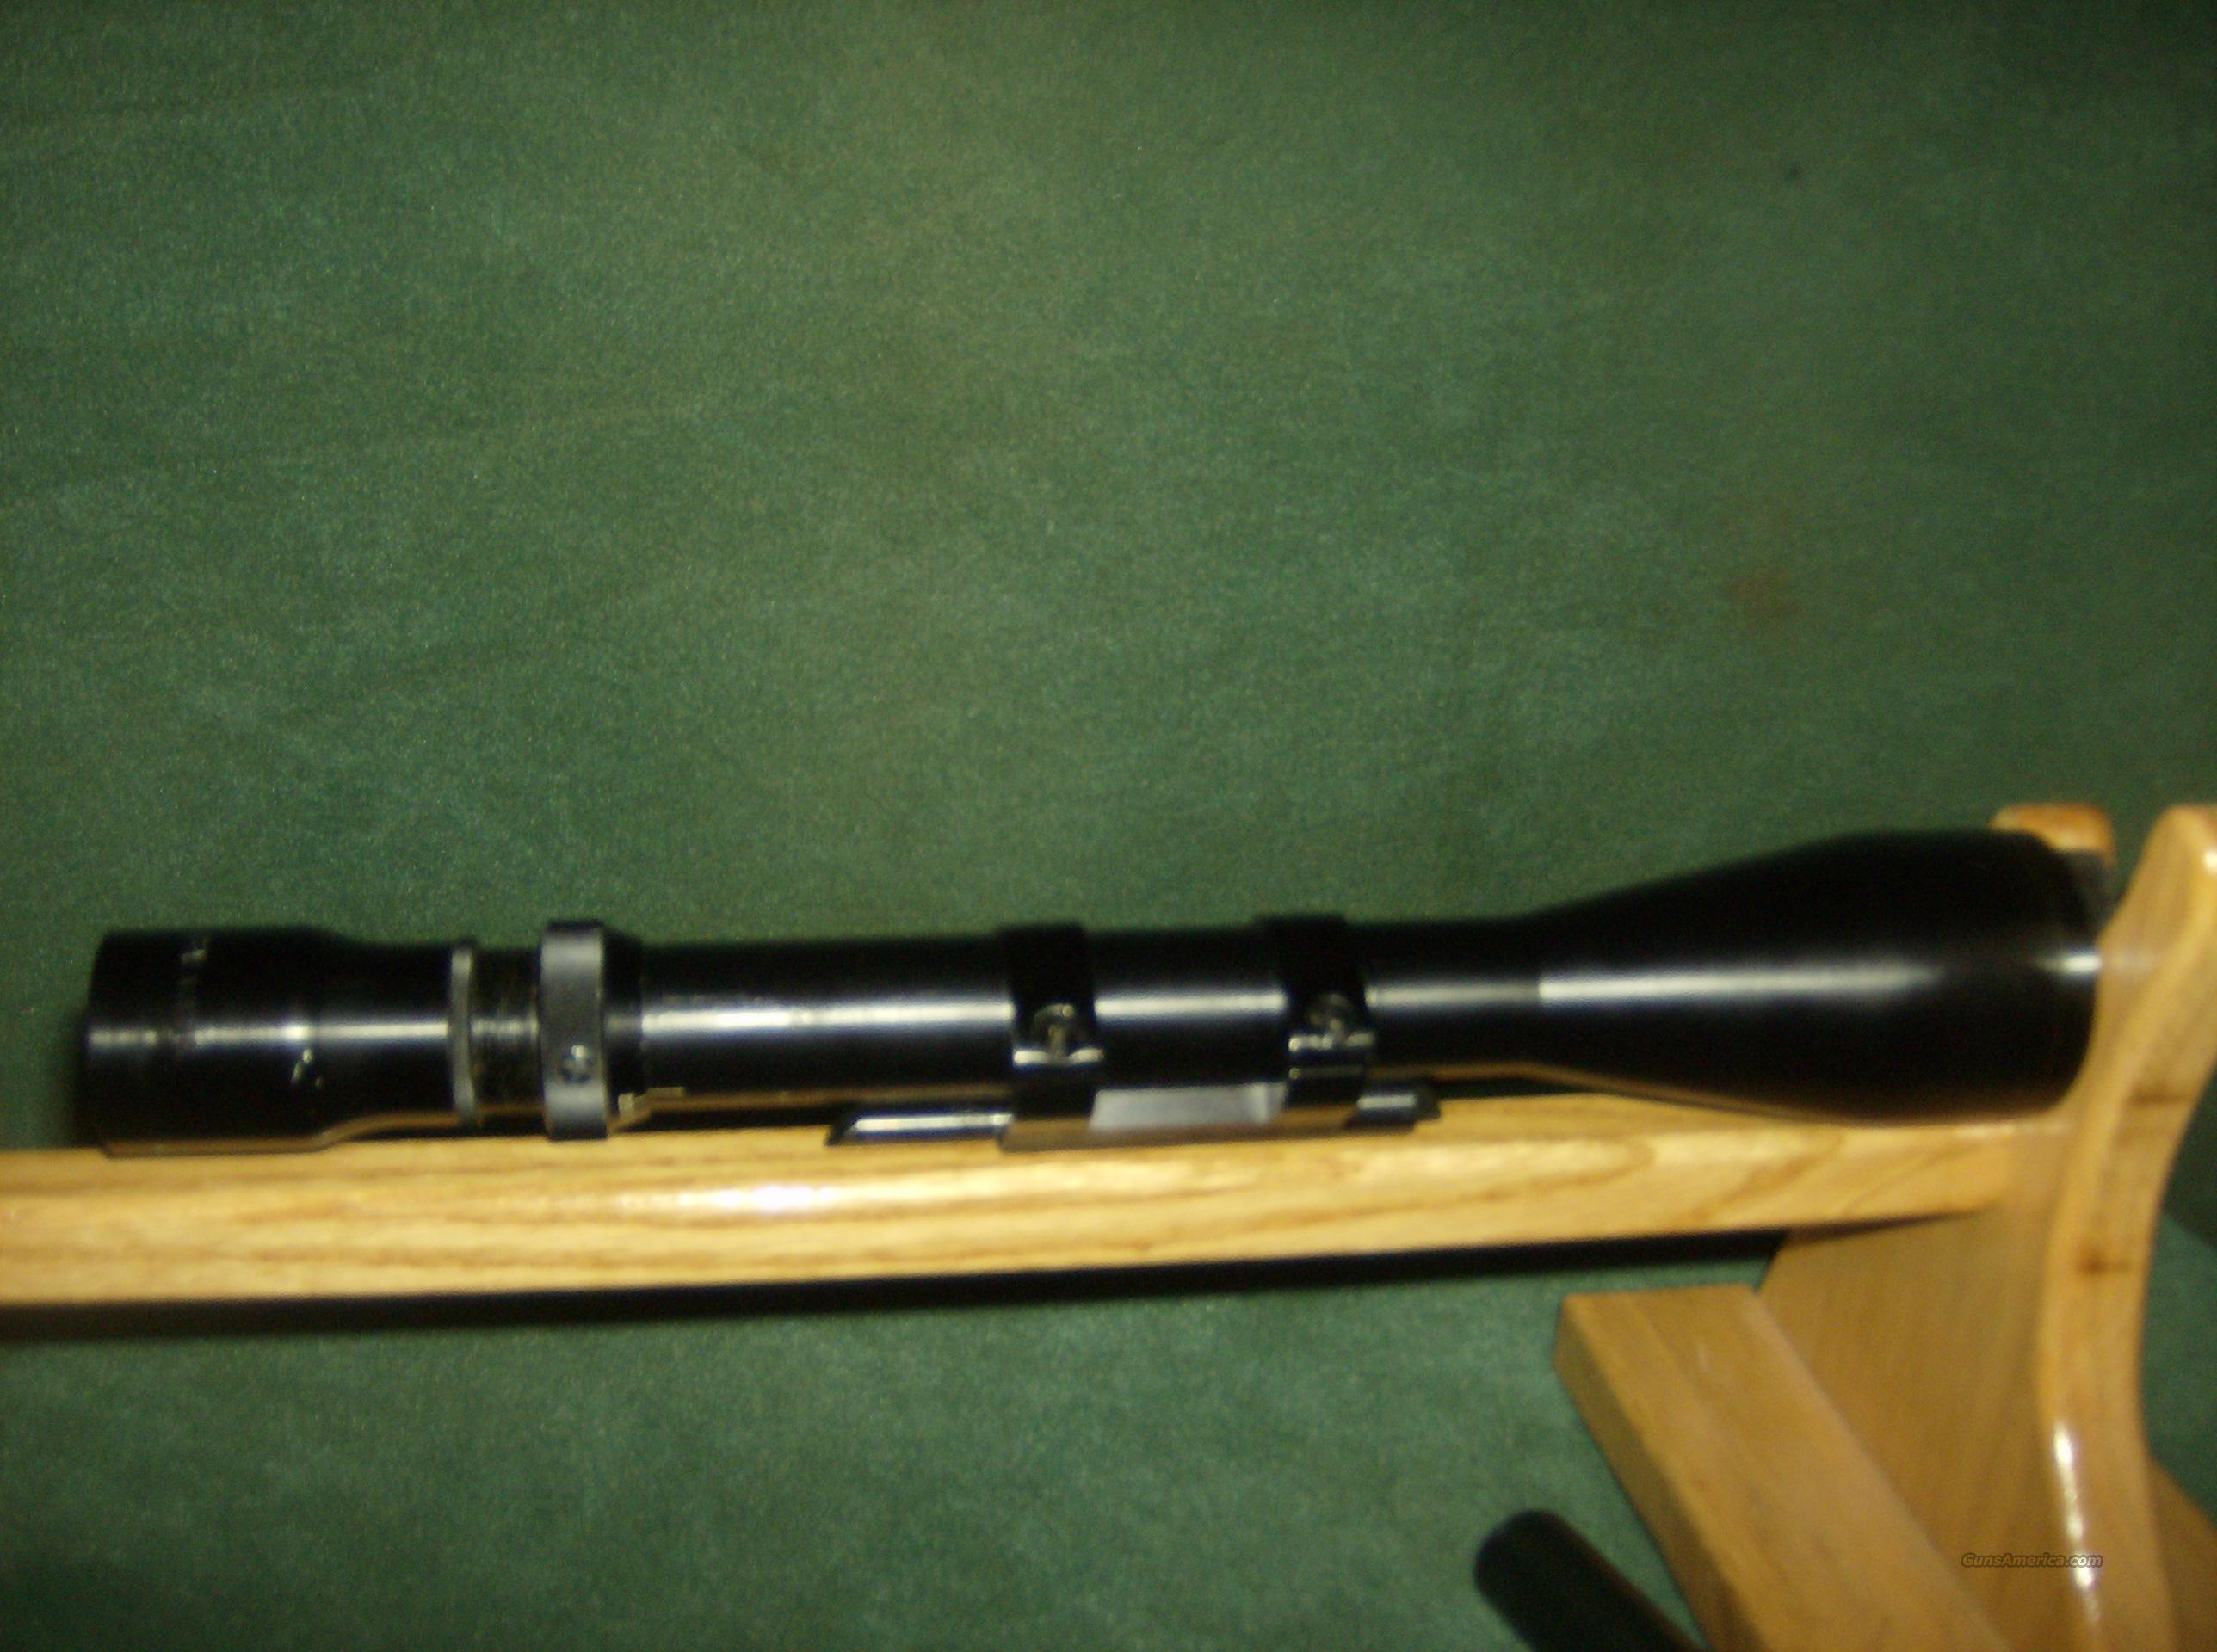 B&L RIFLE SCOPE WITH MOUNT  Non-Guns > Scopes/Mounts/Rings & Optics > Rifle Scopes > Variable Focal Length